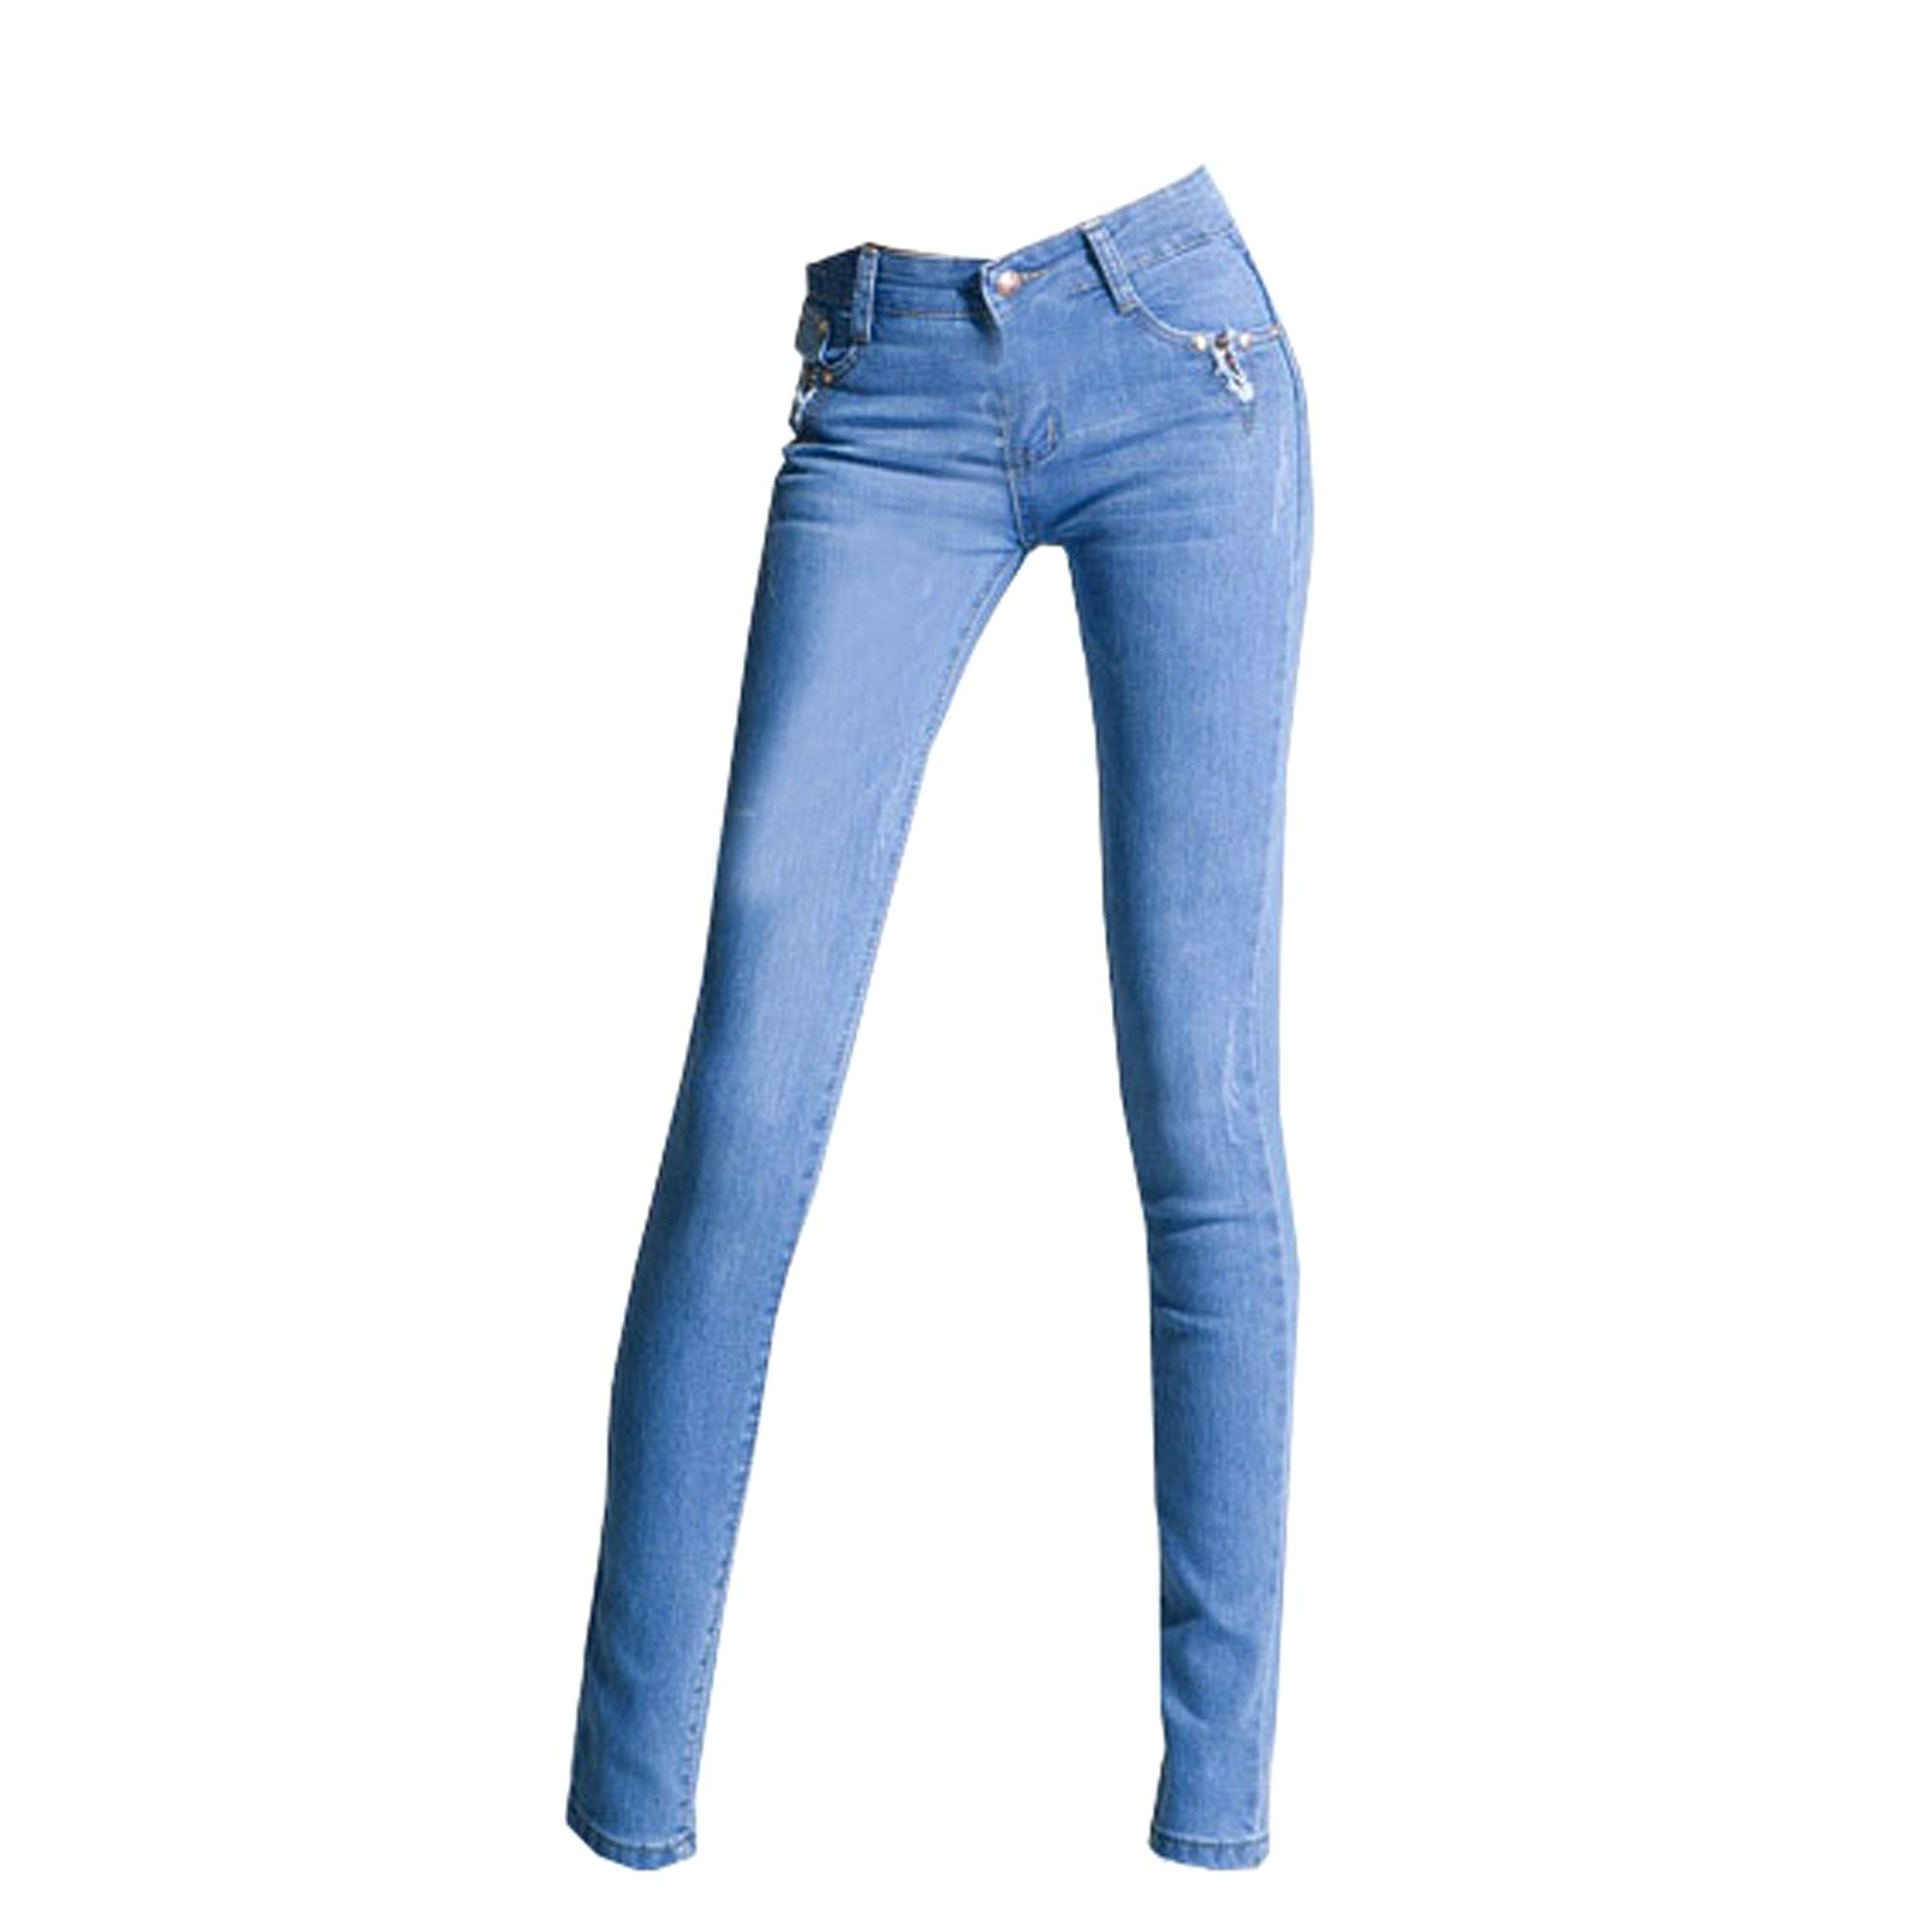 Jeans Clothing from manufacturers, factories, wholesalers ...